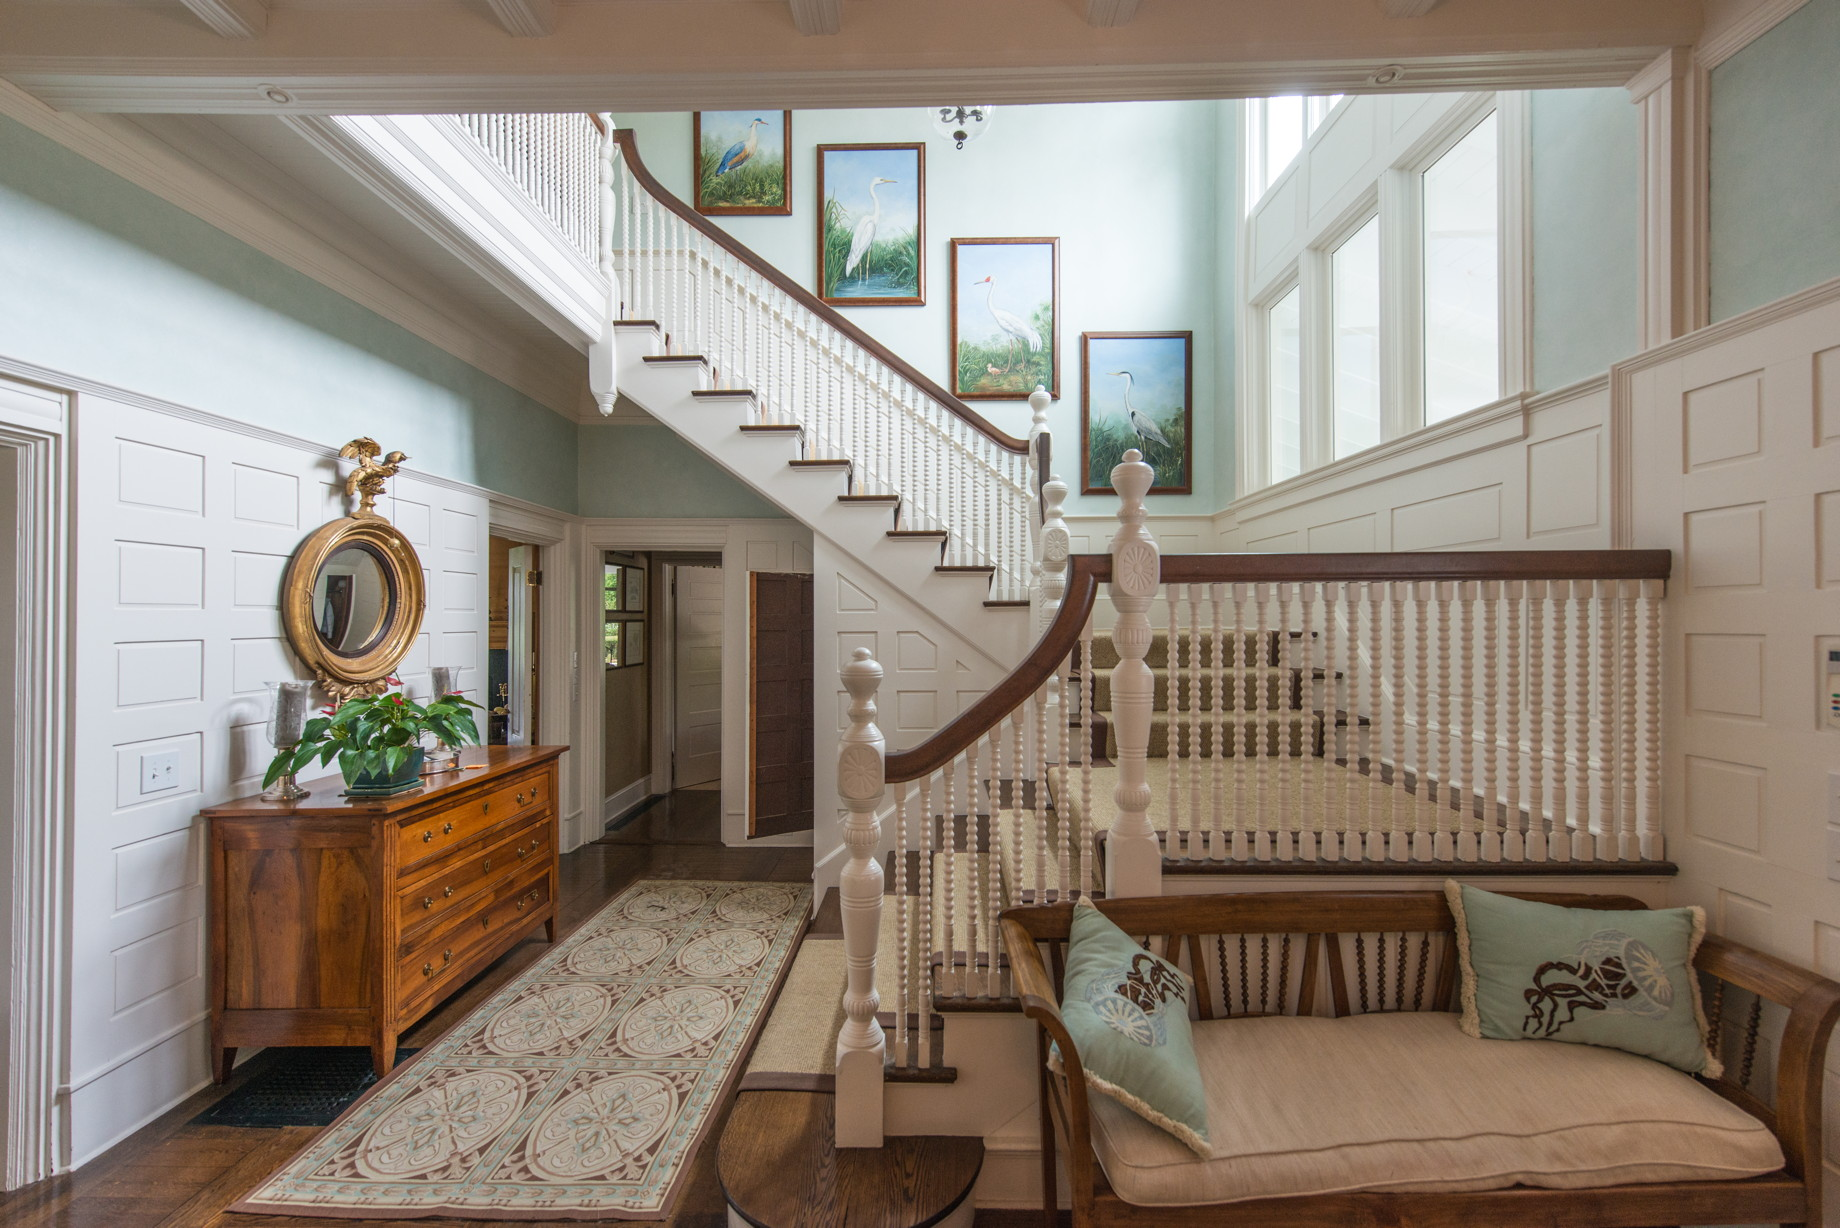 stair hall***.jpg